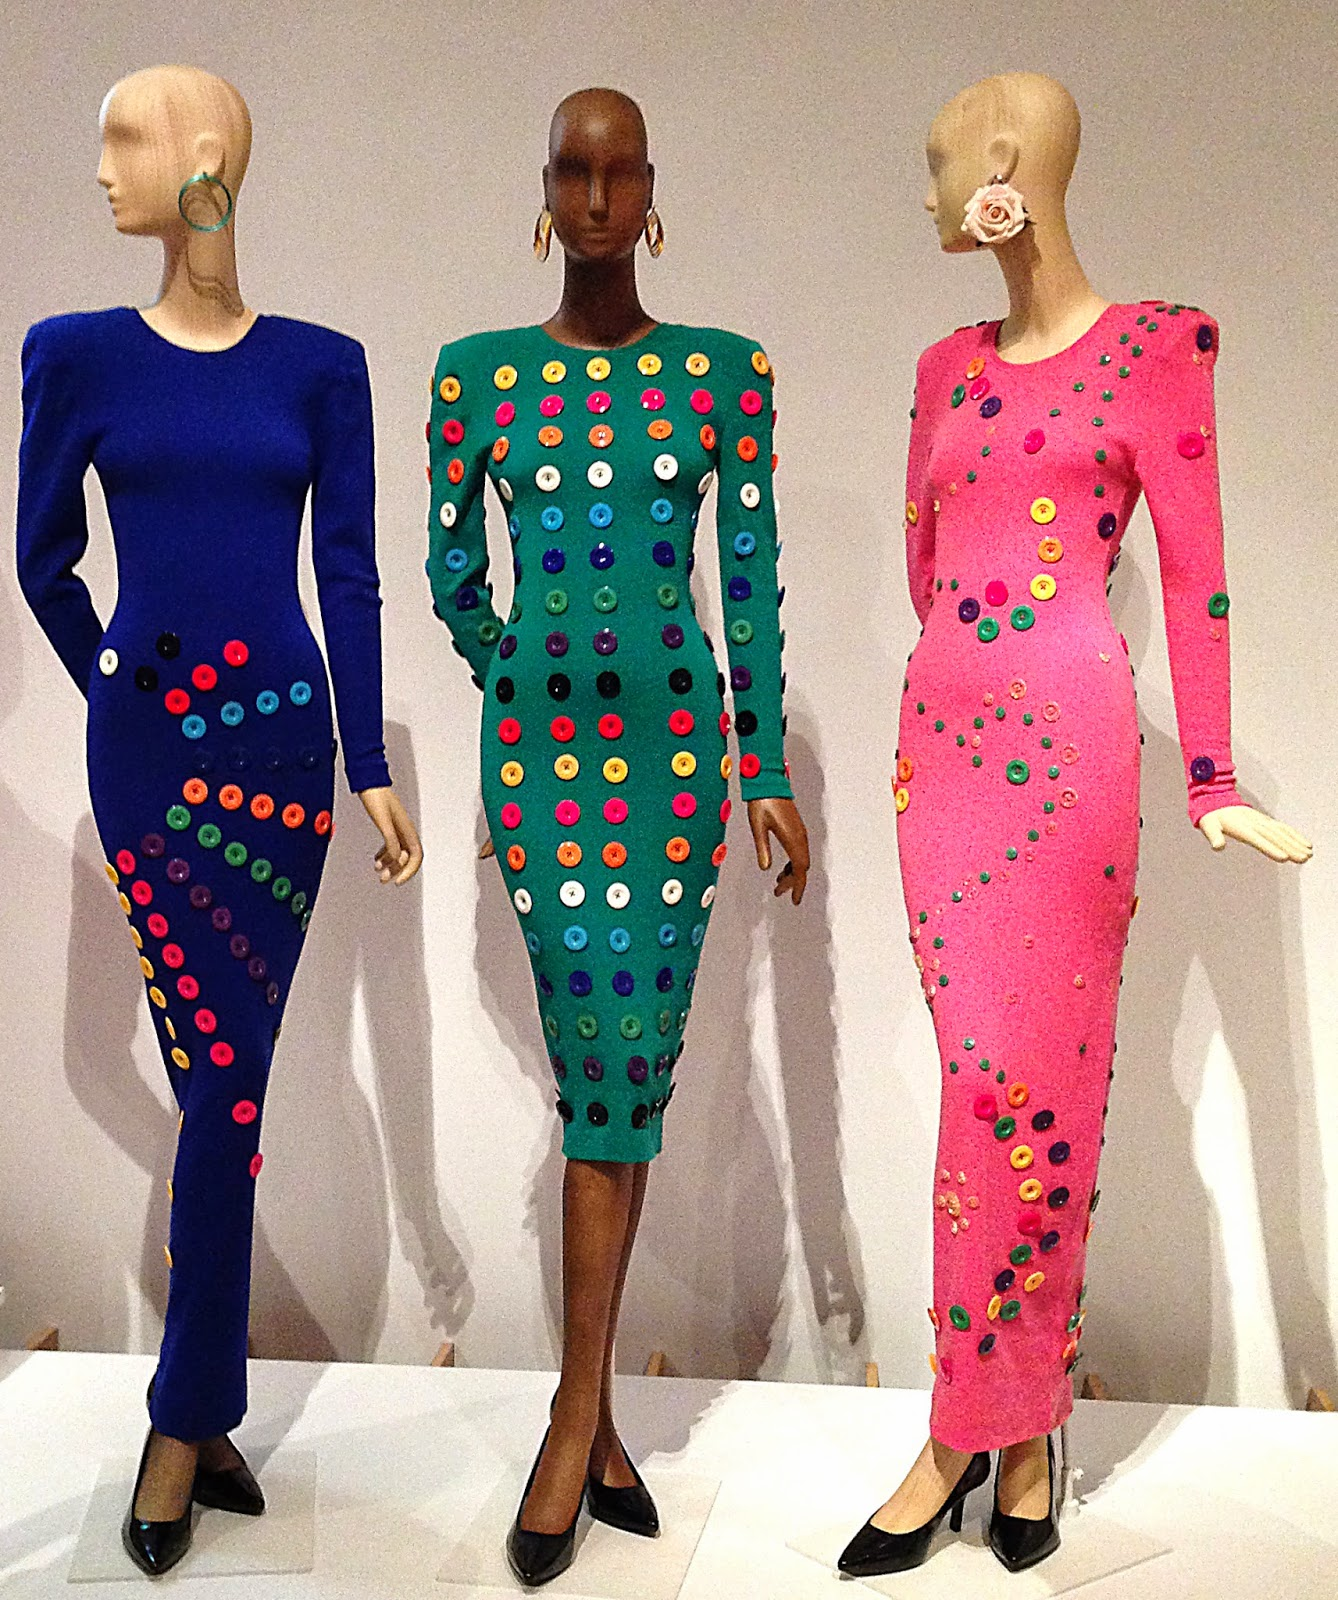 Black Fashion Designers Association Because his work incorporated